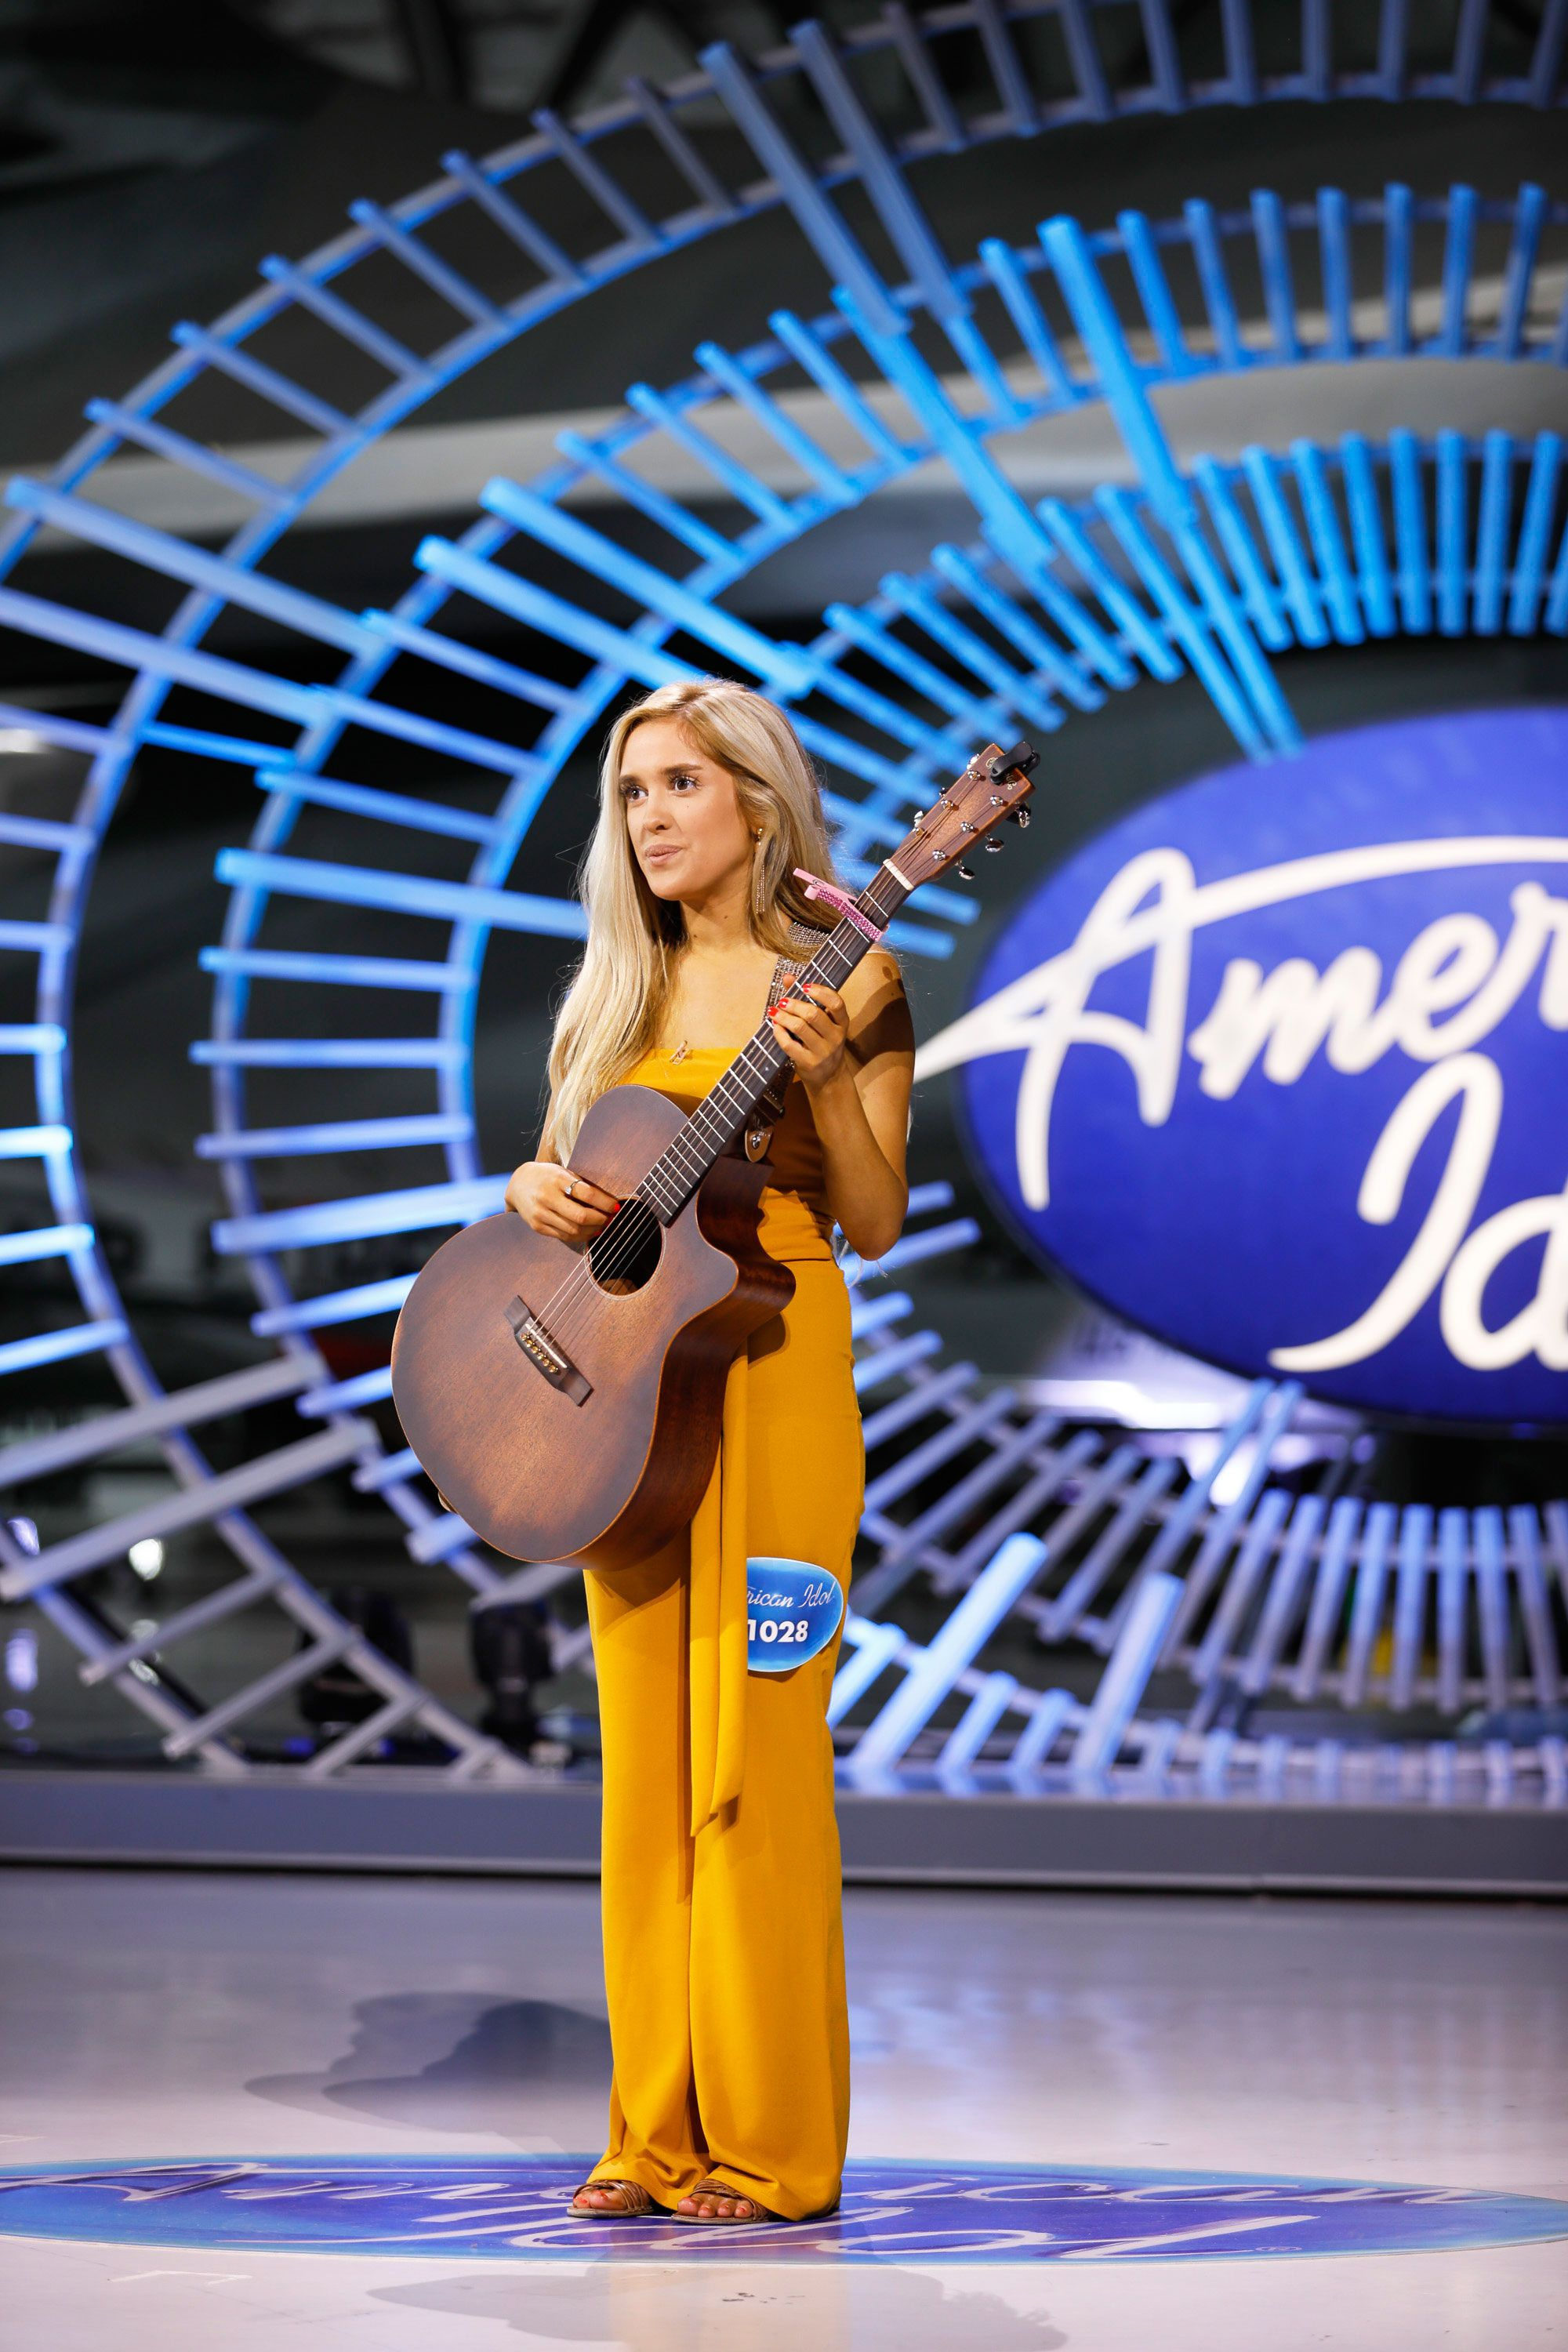 What american idol made a sex tape